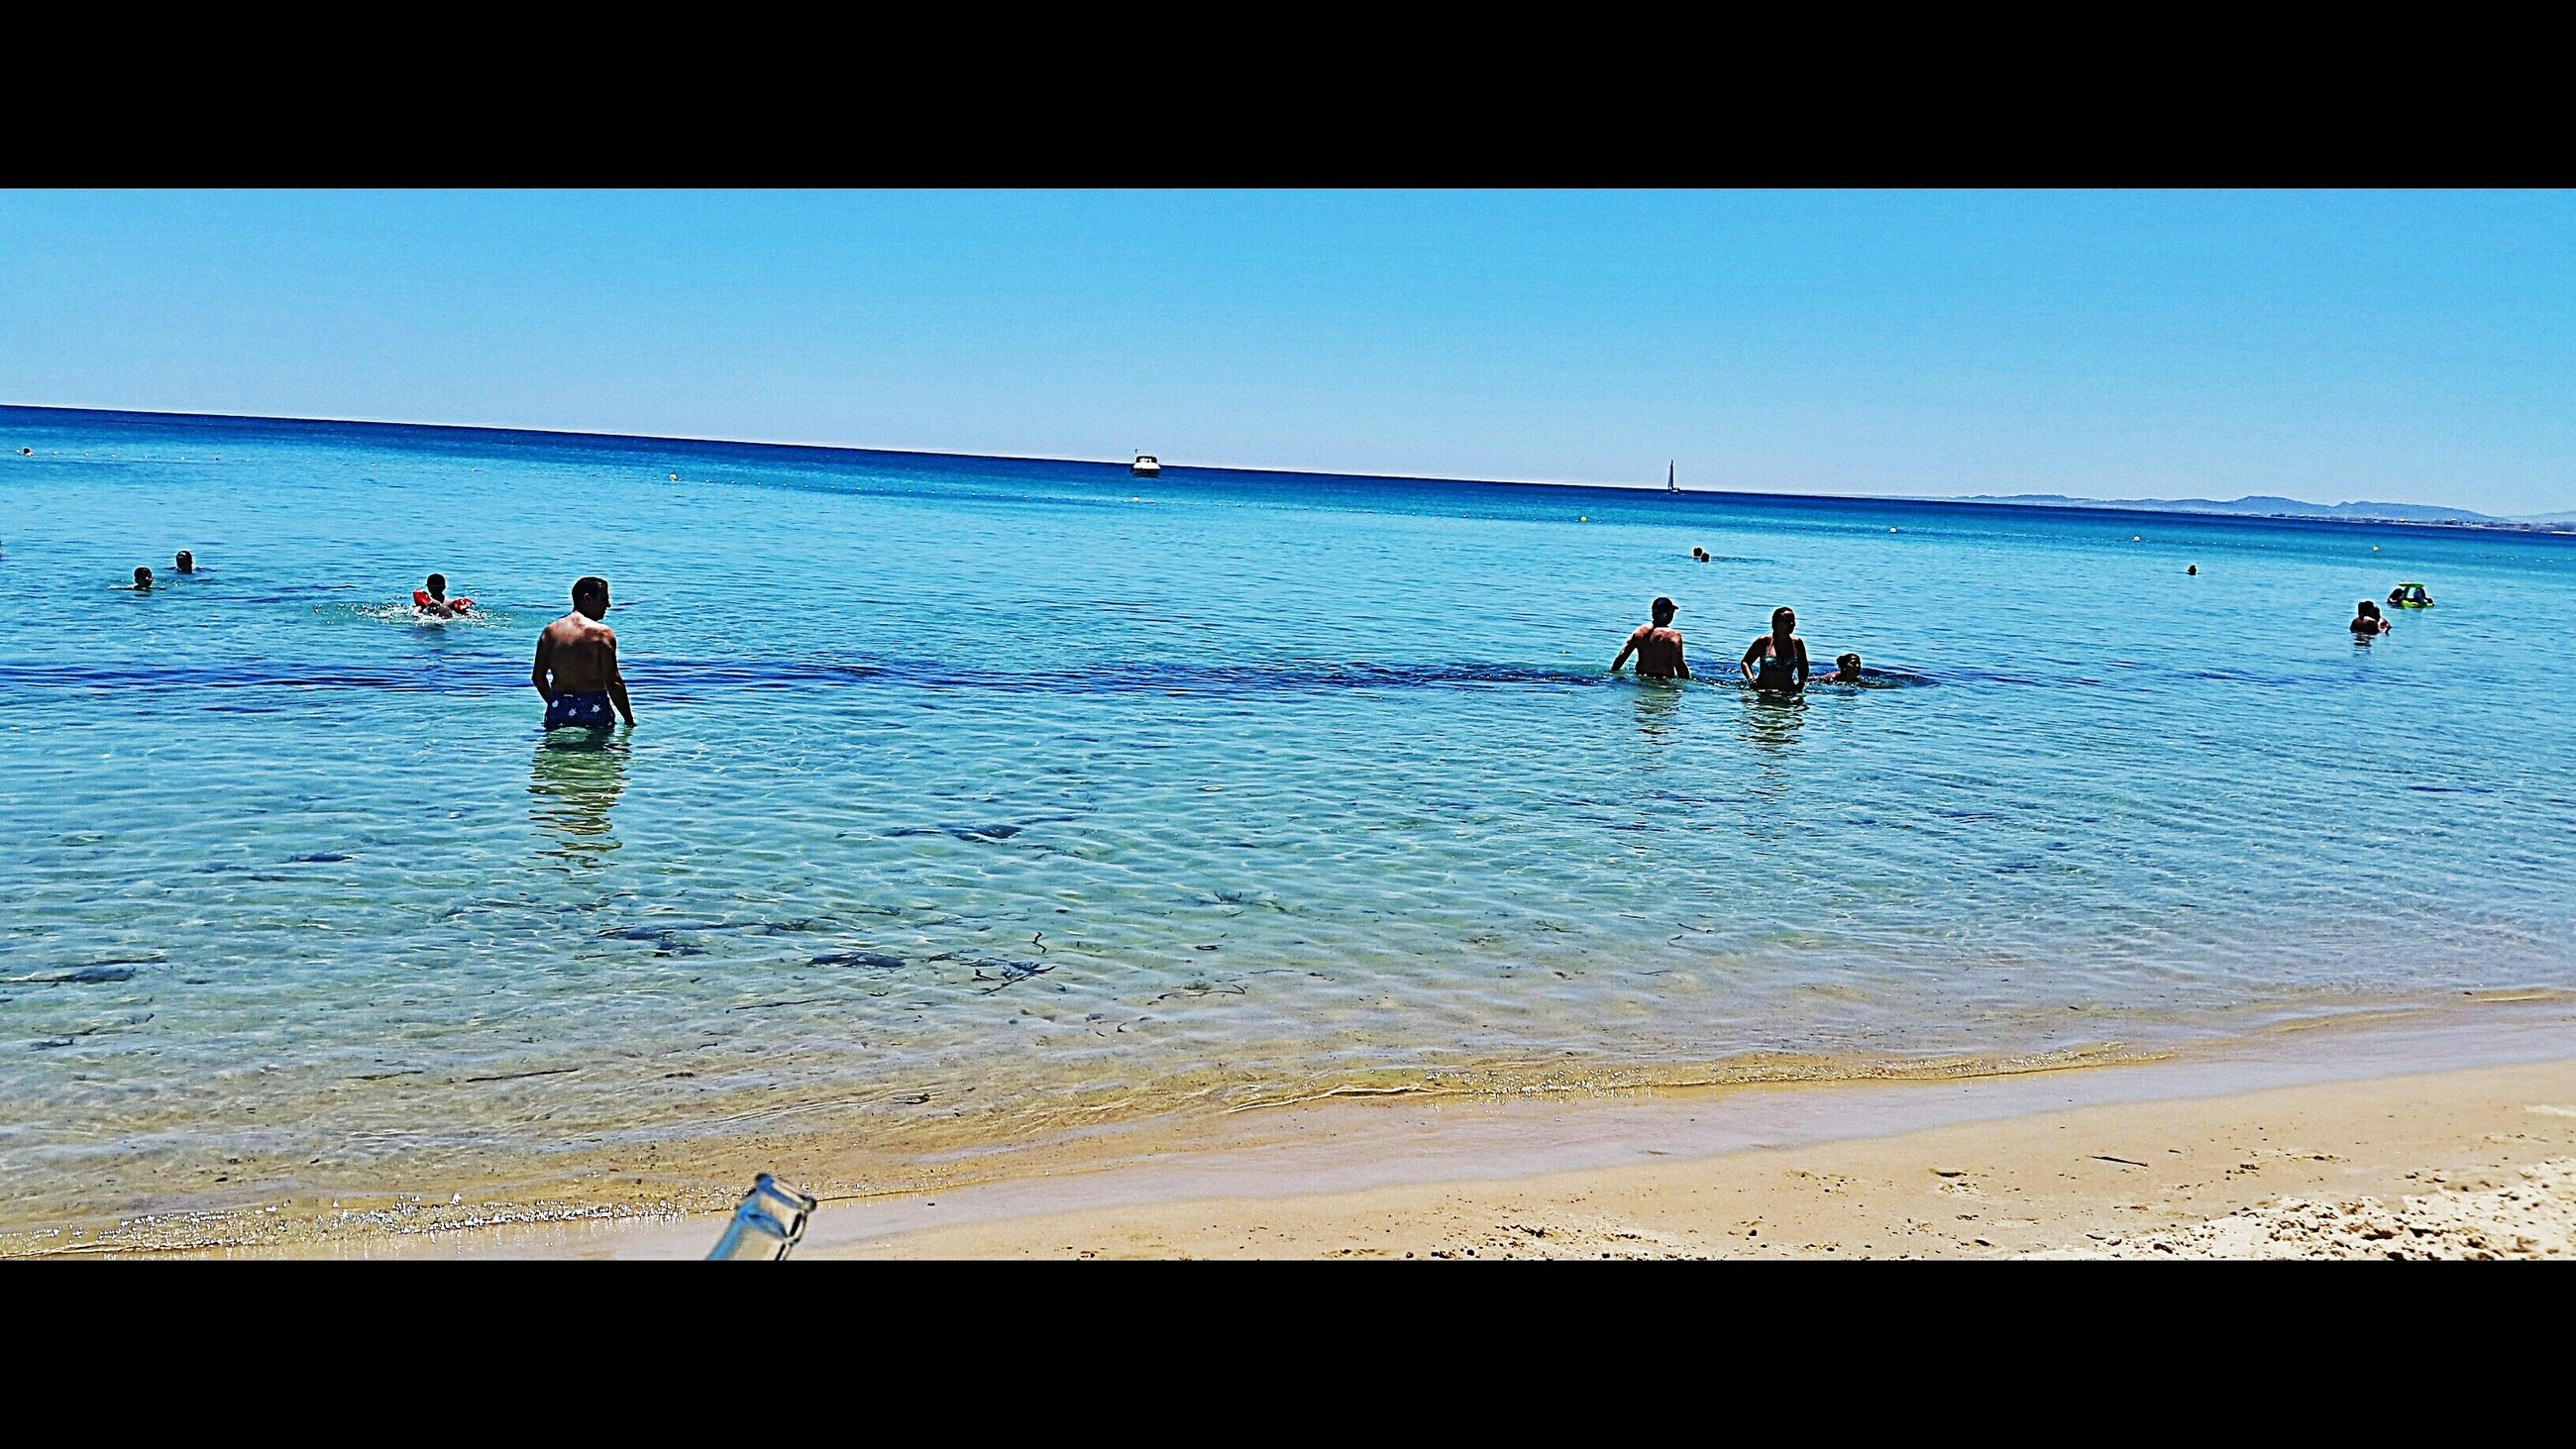 sea, water, beach, horizon over water, leisure activity, lifestyles, shore, vacations, enjoyment, scenics, beauty in nature, medium group of people, blue, nature, wave, mixed age range, sky, tranquil scene, tourist, summer, tranquility, coastline, tourism, outdoors, ocean